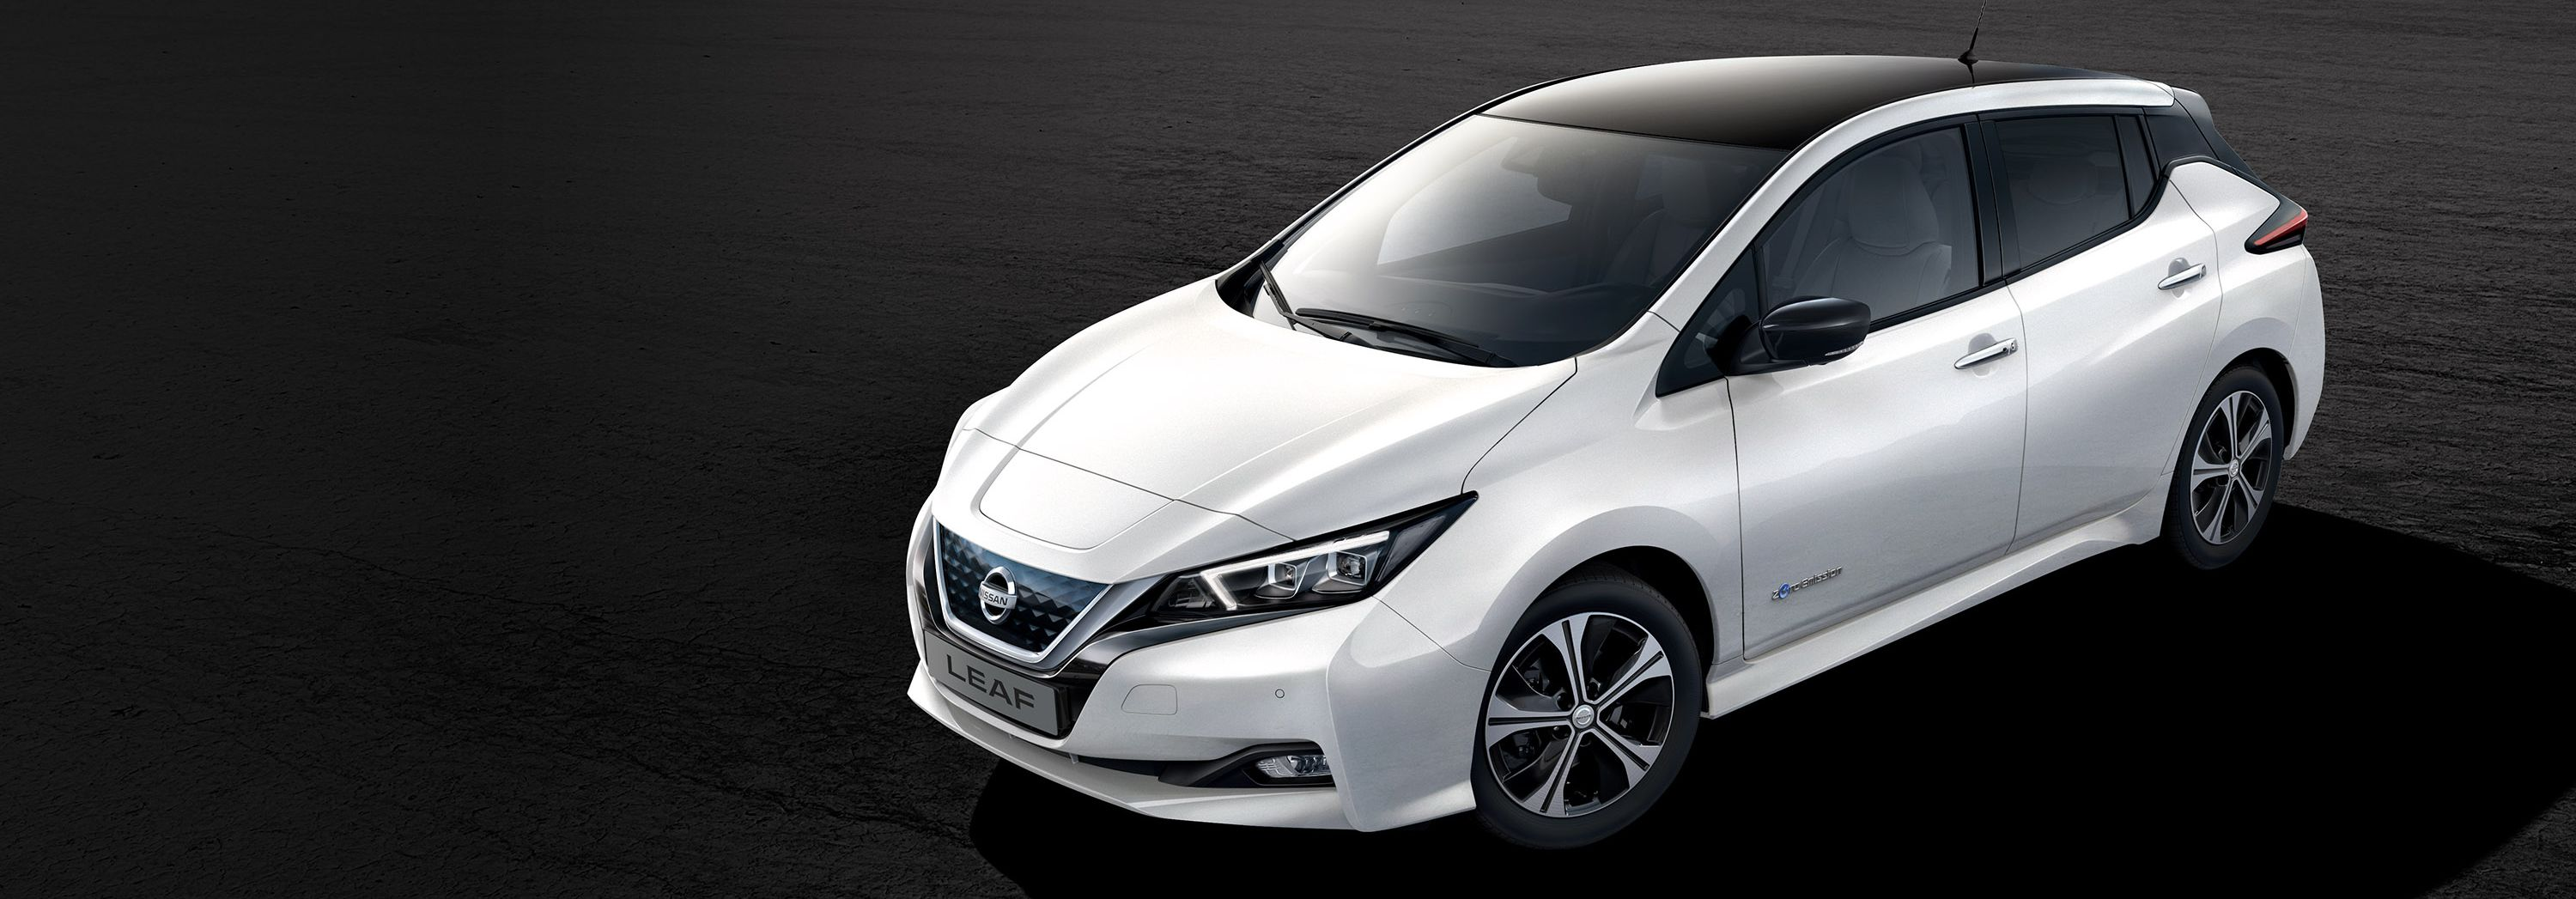 2018 Nissan Leaf For Sale Near Mendon Ma Milford Nissan